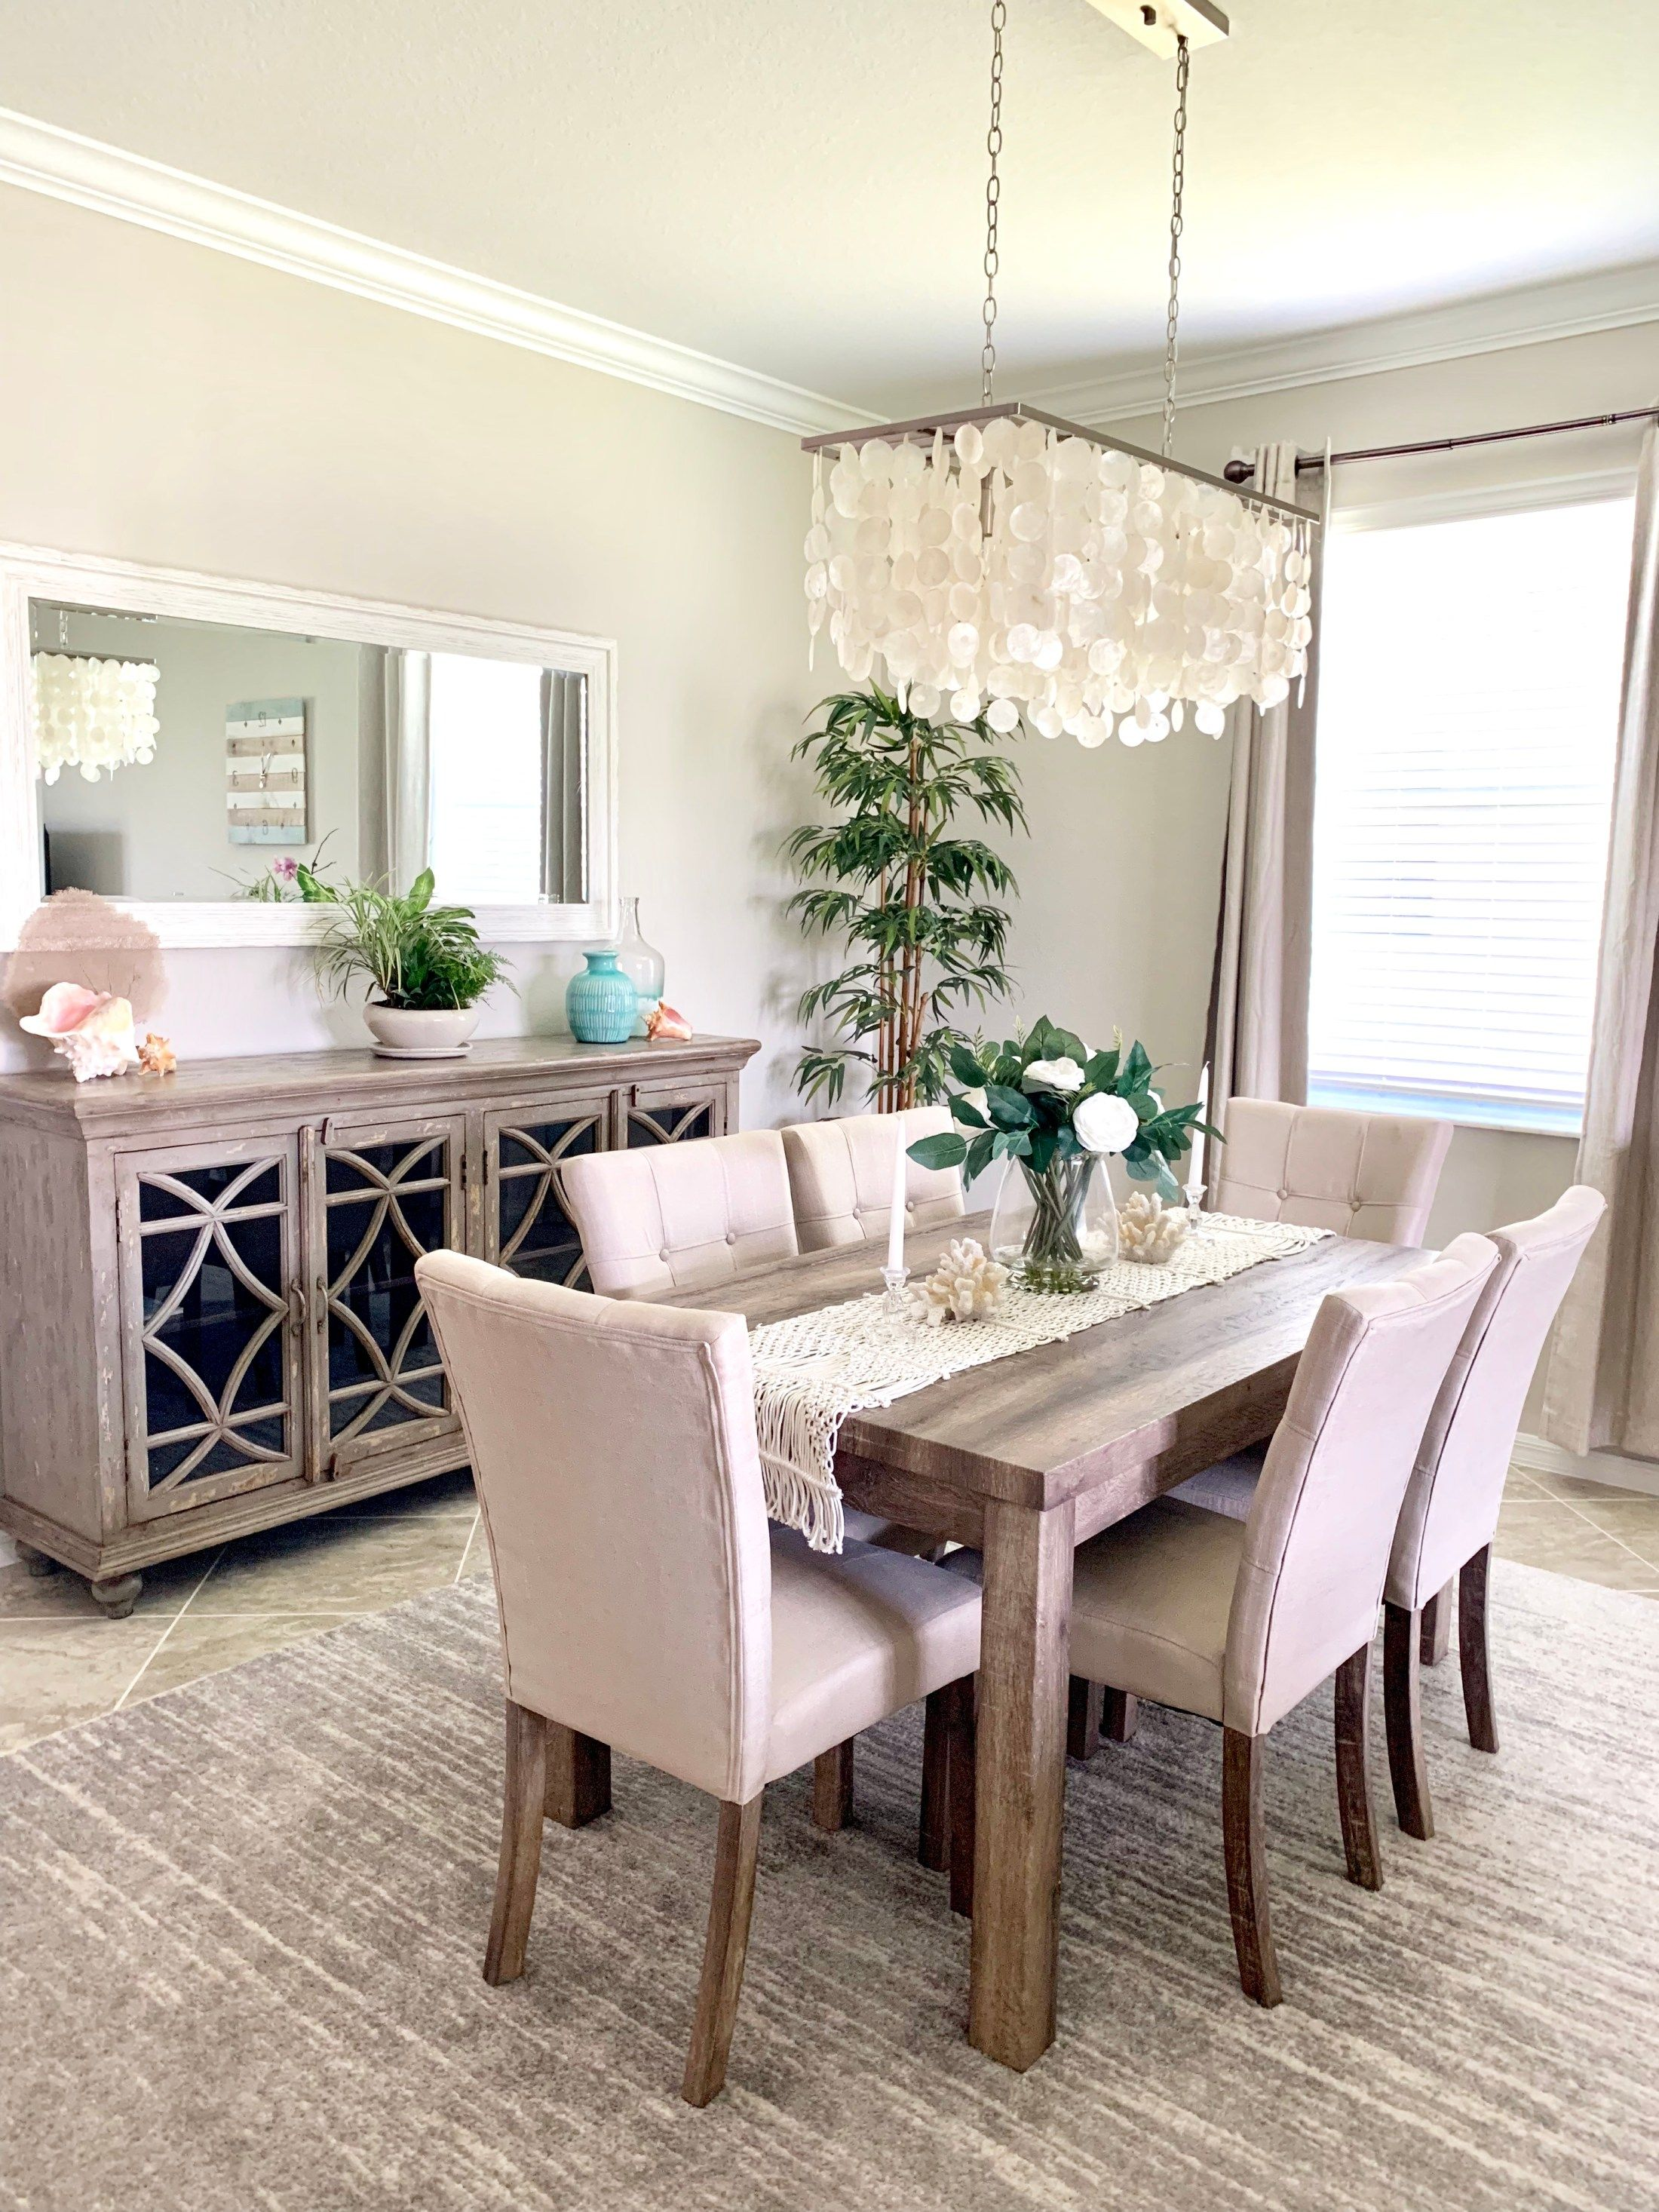 Dining Room Tour | Oh How Charming by Lauren